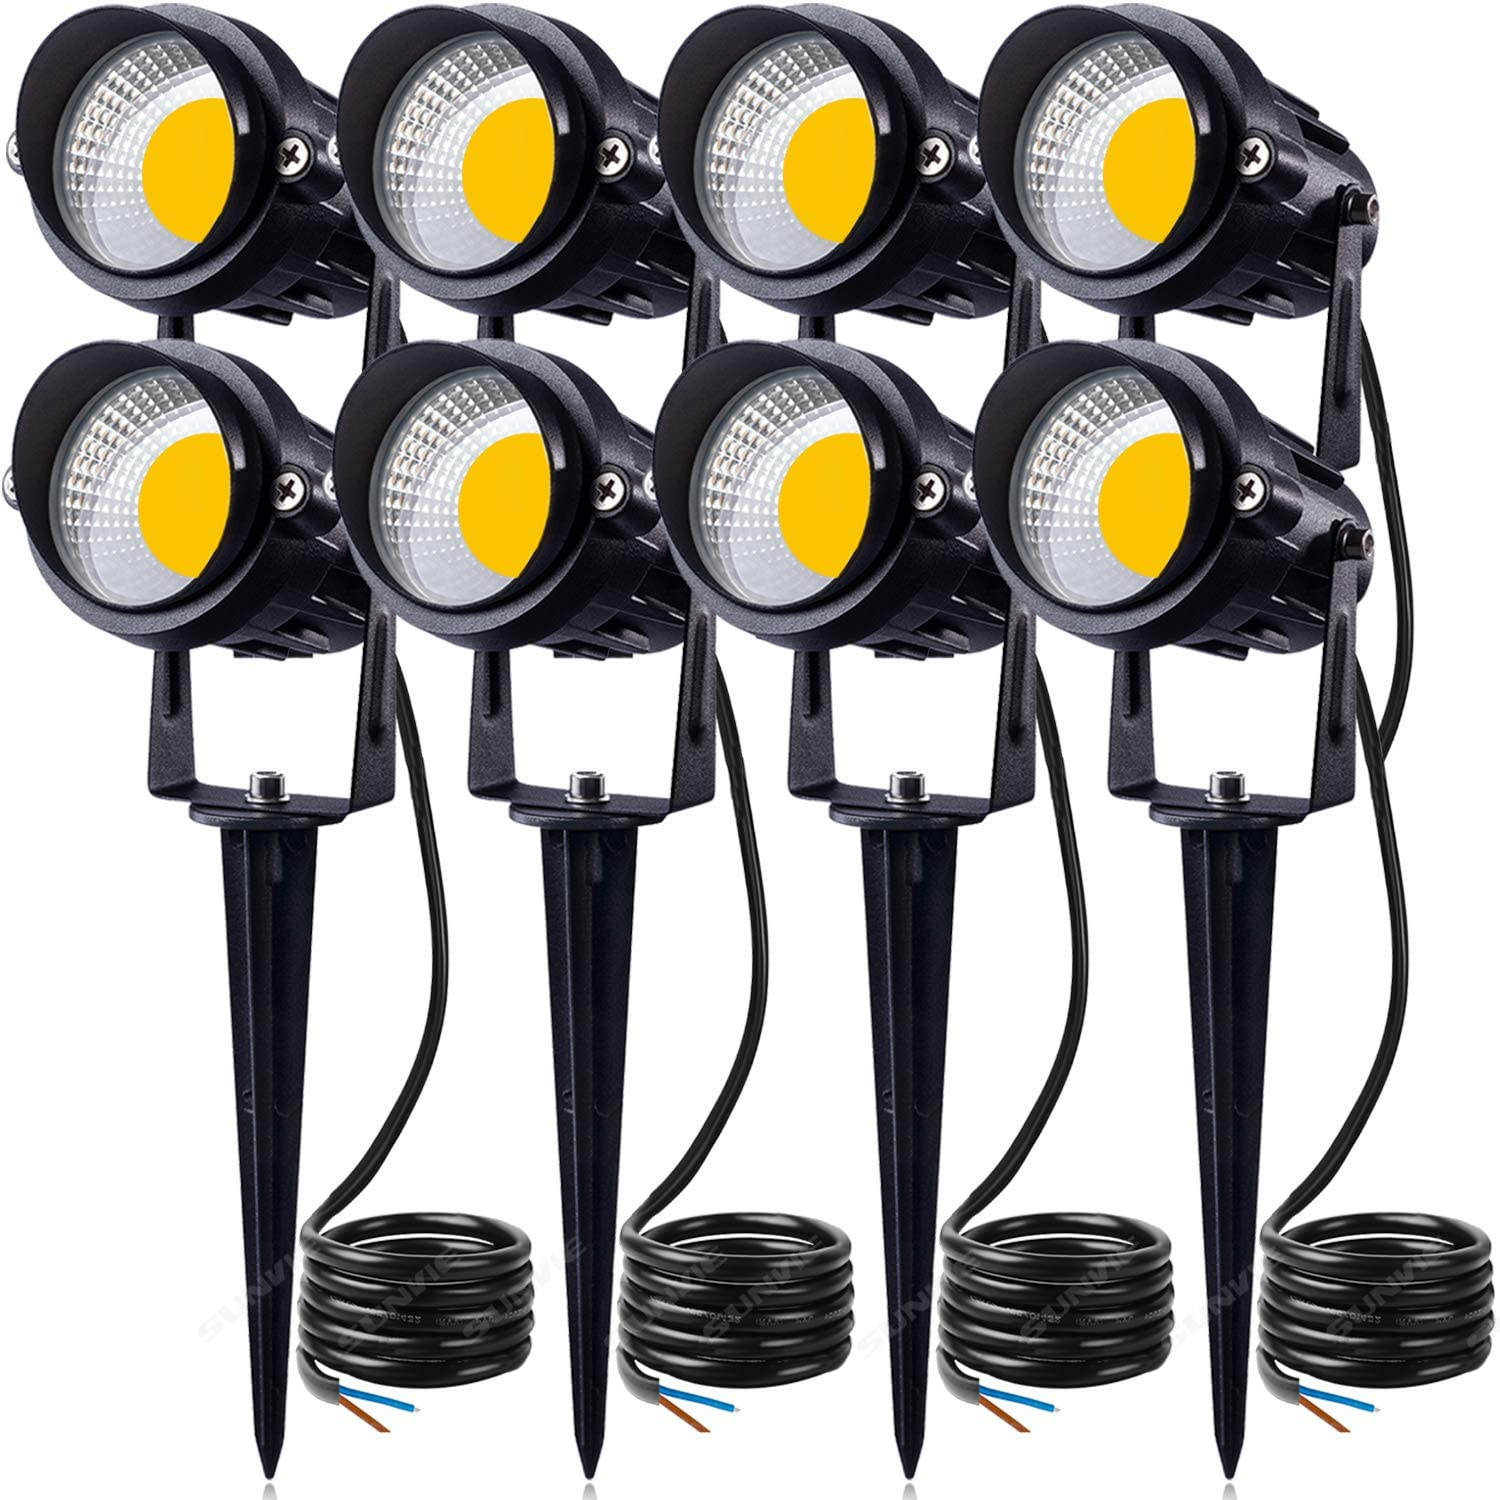 SUNVIE 40W LED Landscape Lights Low Voltage AC/DC 40V Waterproof Garden  Pathway Lights Super Warm White 40LM Walls Trees Flags Outdoor  Spotlights ...